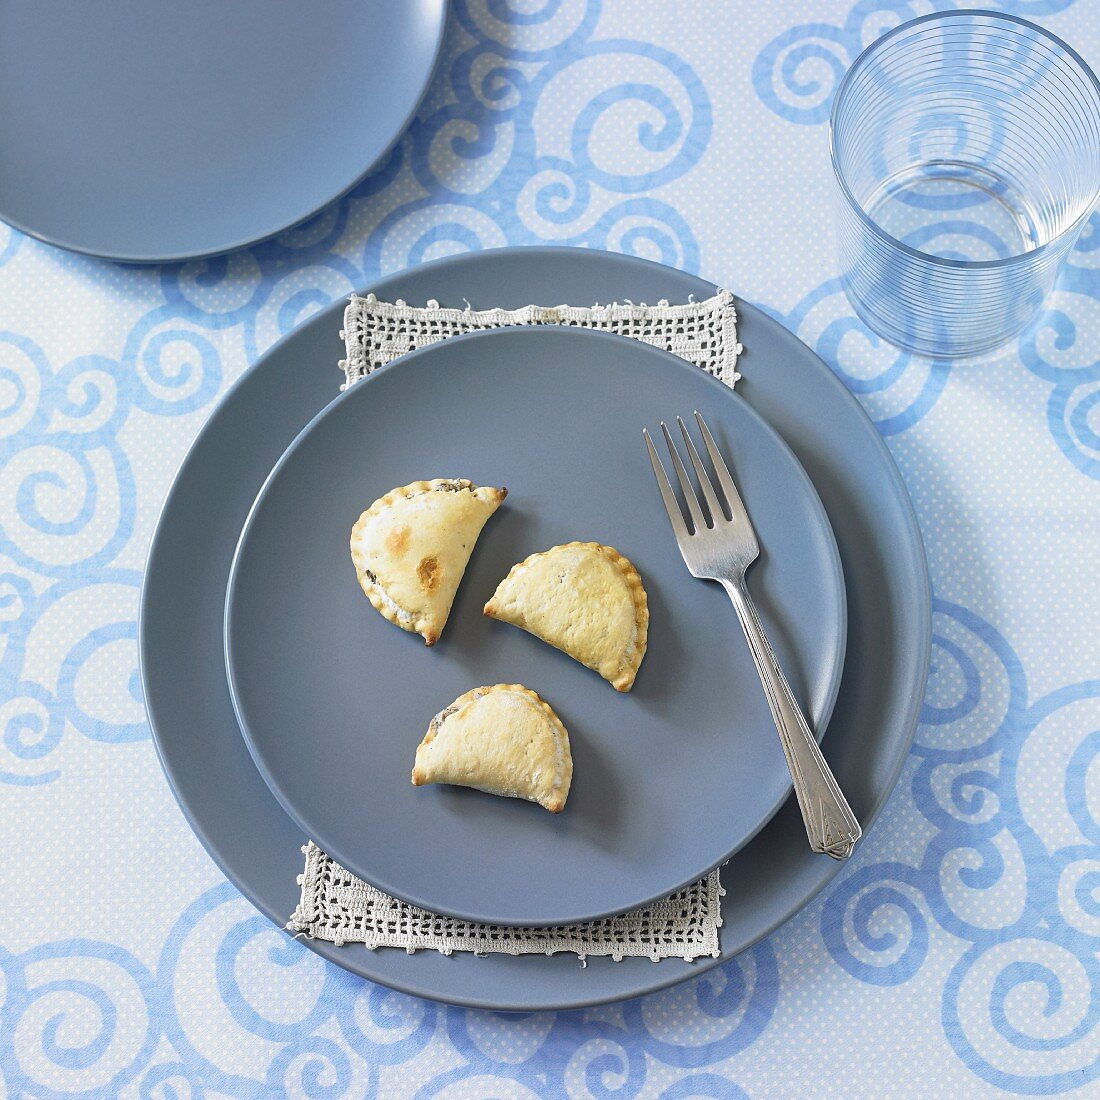 A place setting with blue plates and mushroom filled pastry parcels